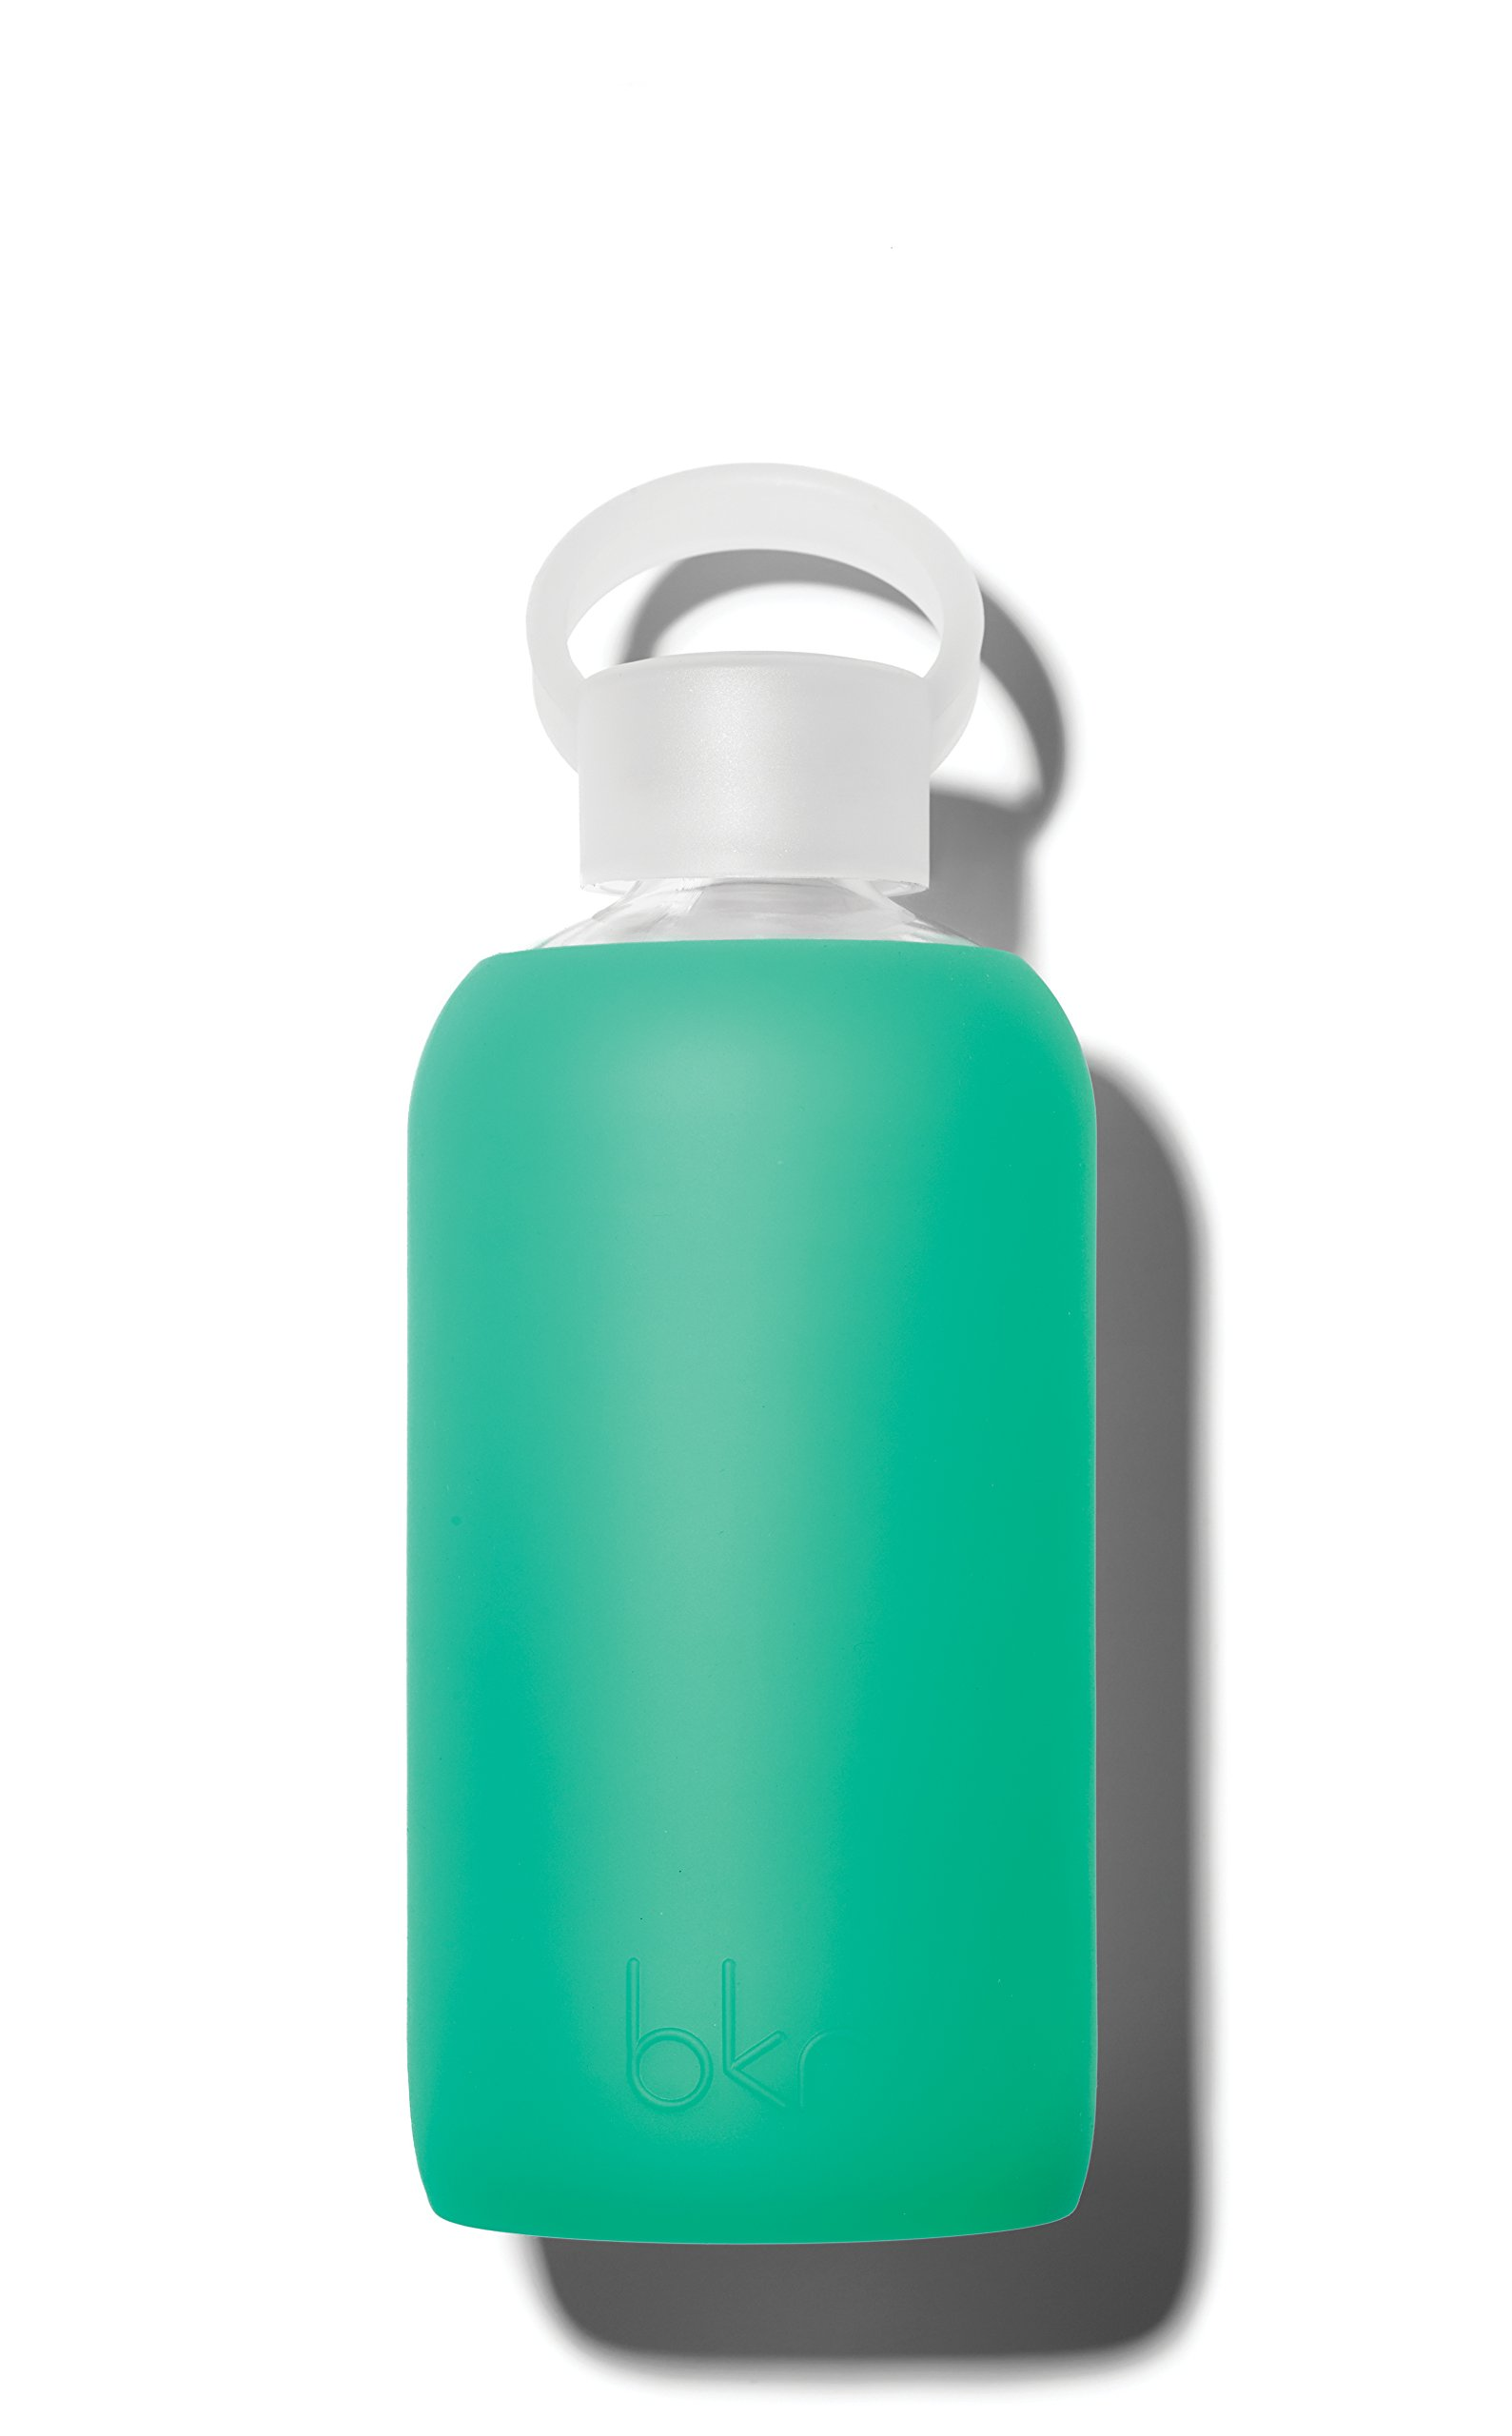 bkr Gramercy, Sheer Lush Garden Green, 16 oz by bkr